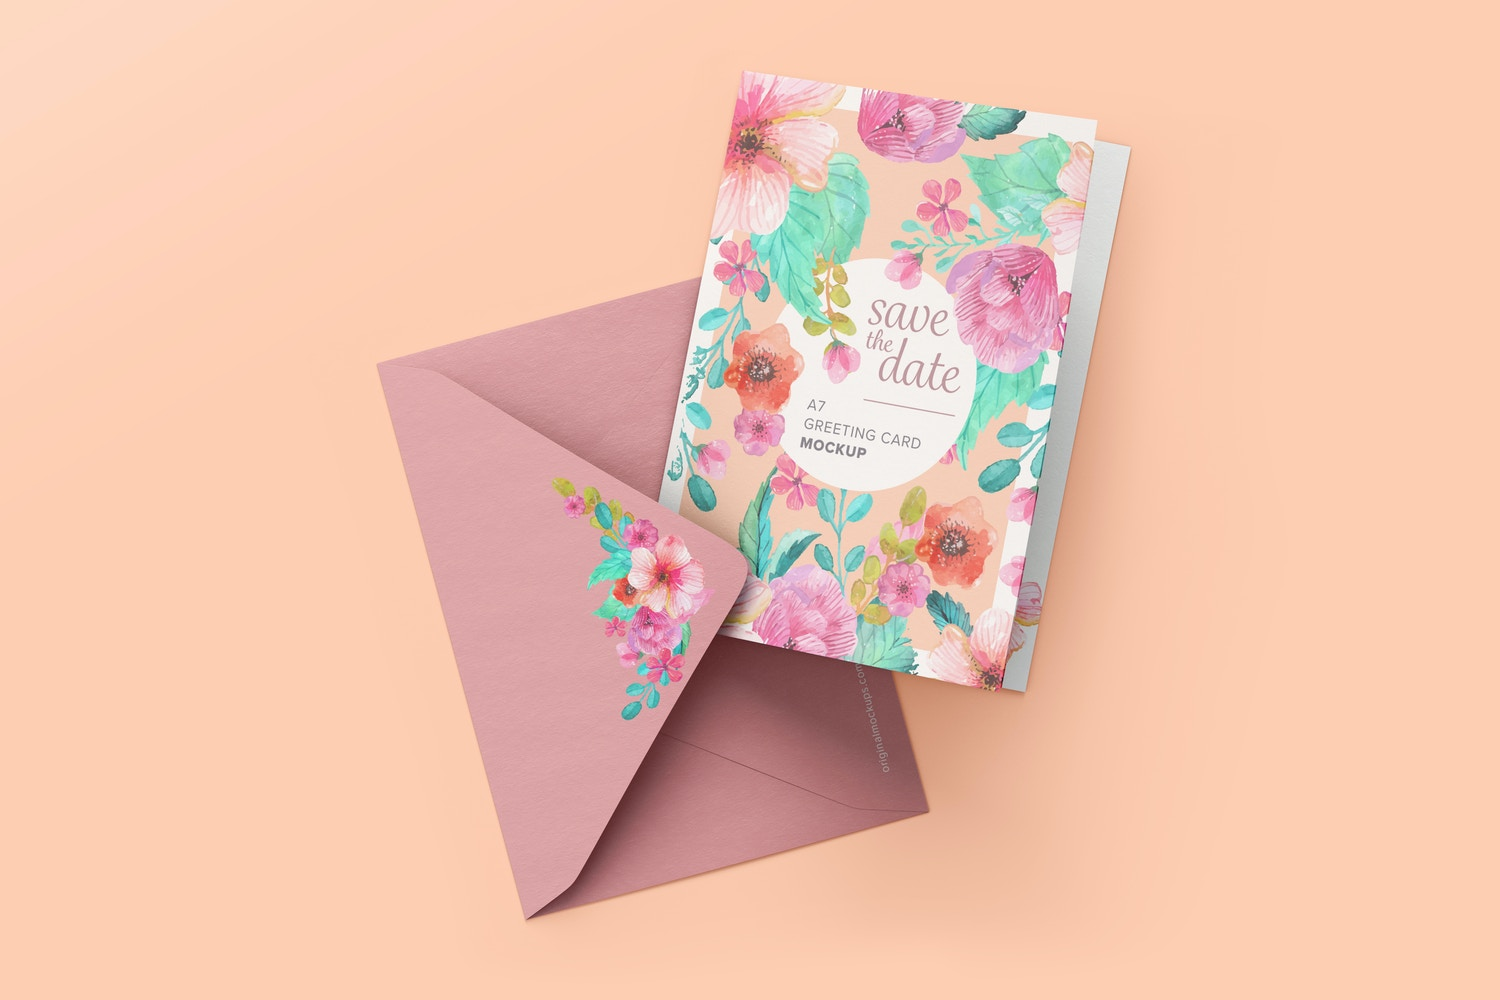 Portrait A7 Greeting Card Mockup with Envelope, Top View